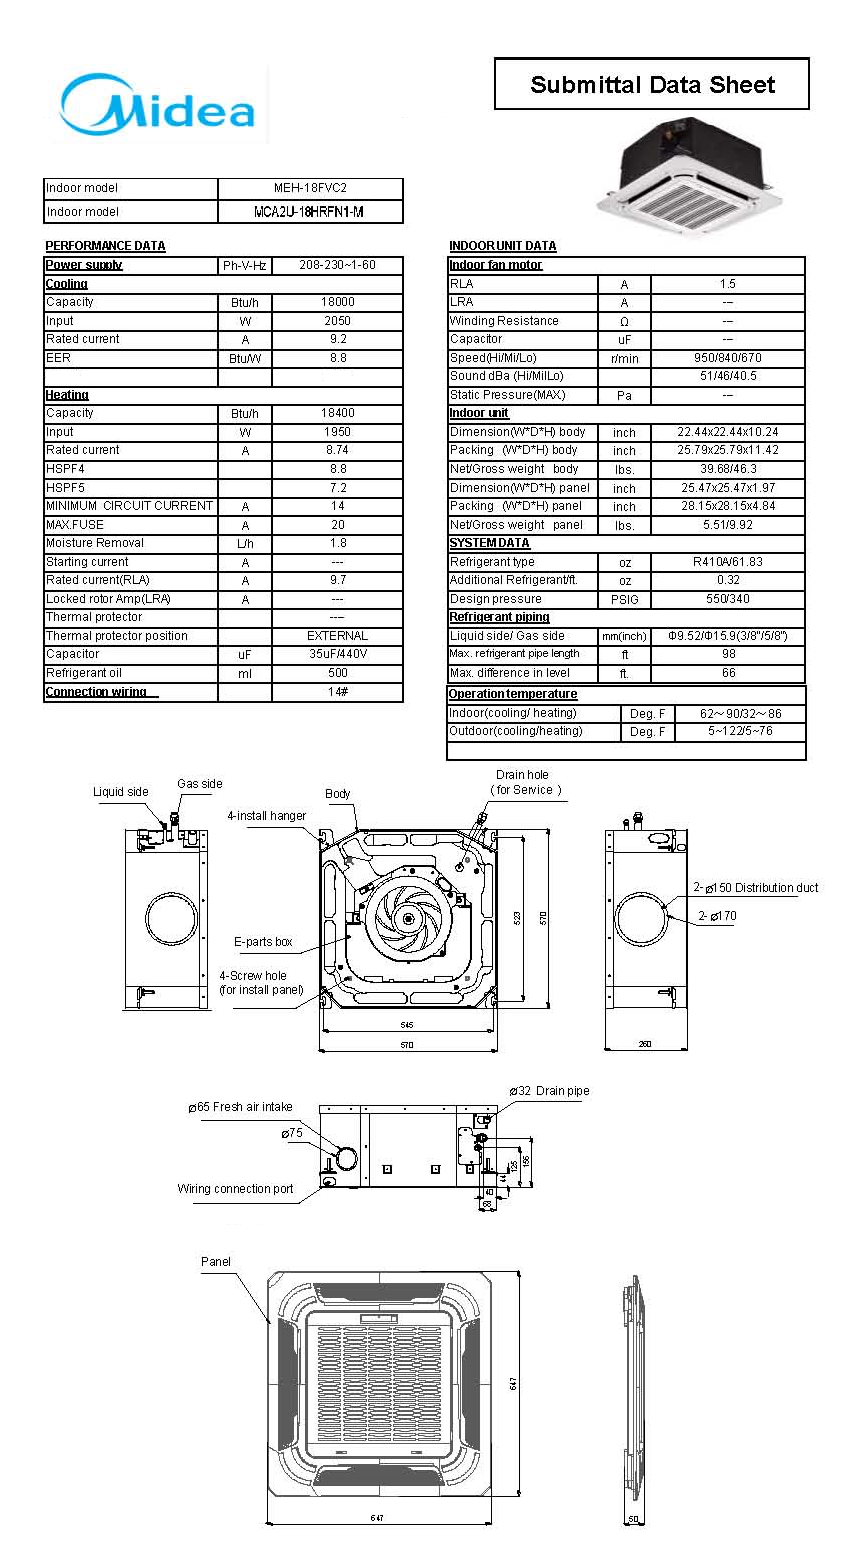 Daikin Mini Split Diagram Com